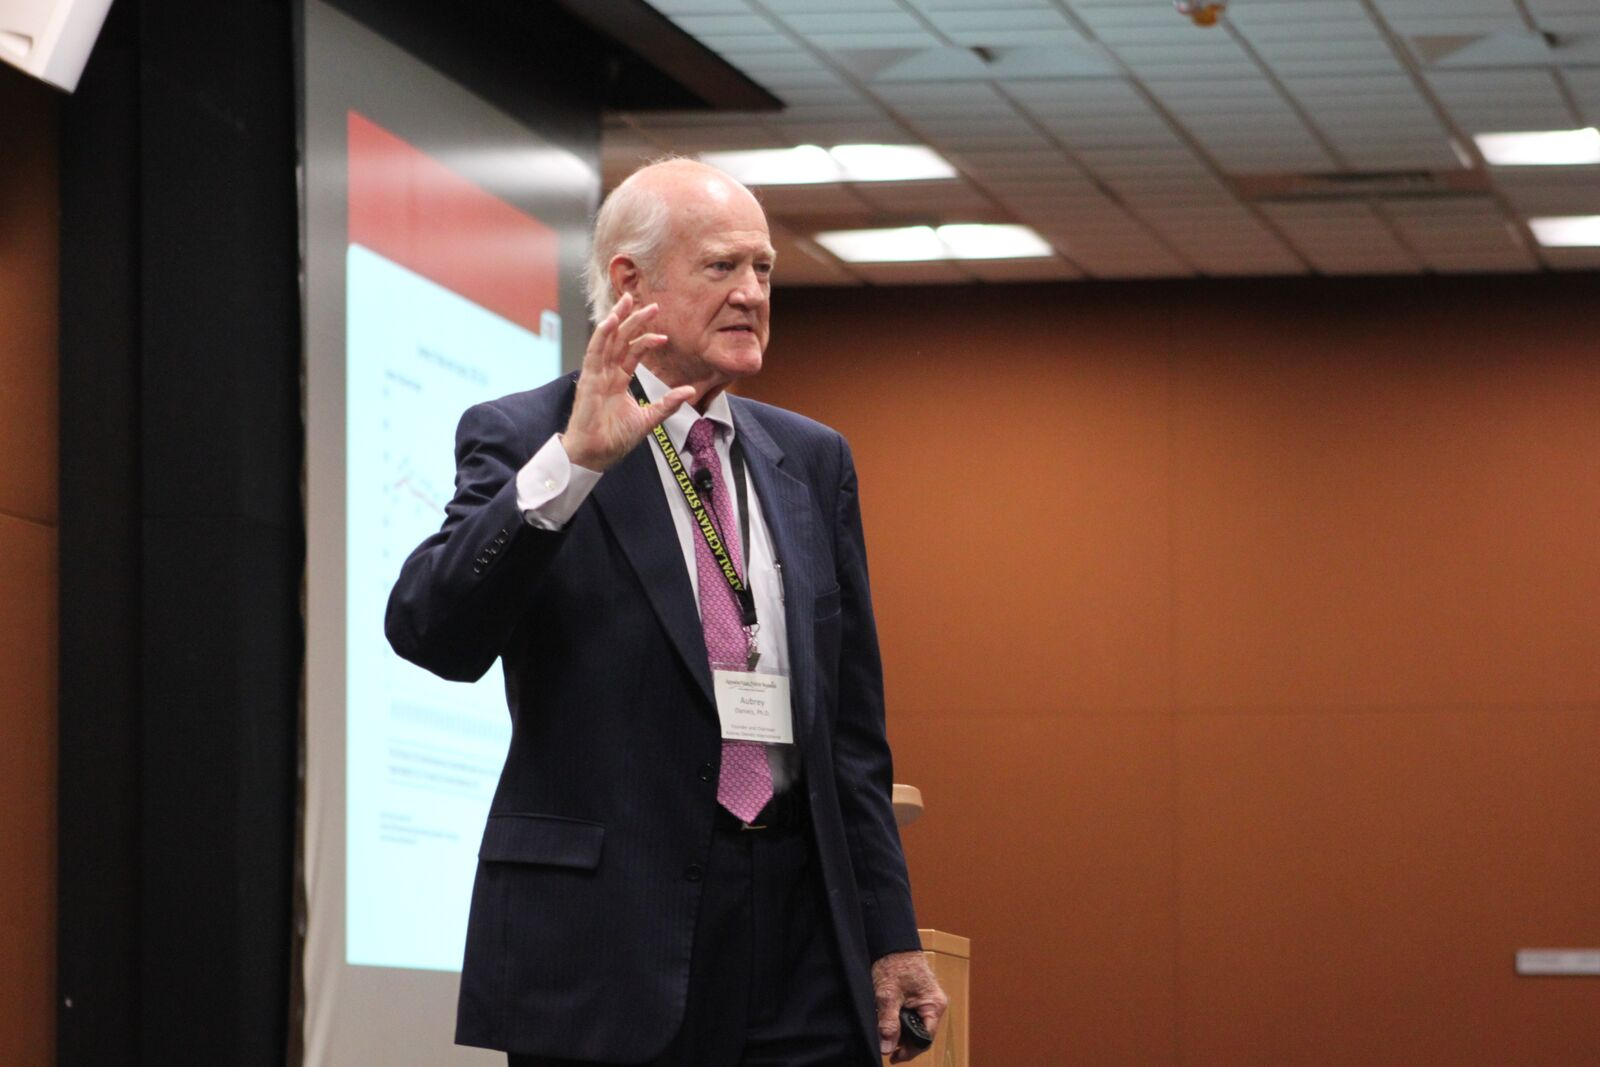 Business Taking Safety Seriously? - Dr. Aubrey Daniels discussing the role behavioral safety has played in making the workplace safer in the last two decades, as work related fatalities have decreased about 1% per year and work injuries have declined at about 1.5% during the same period.